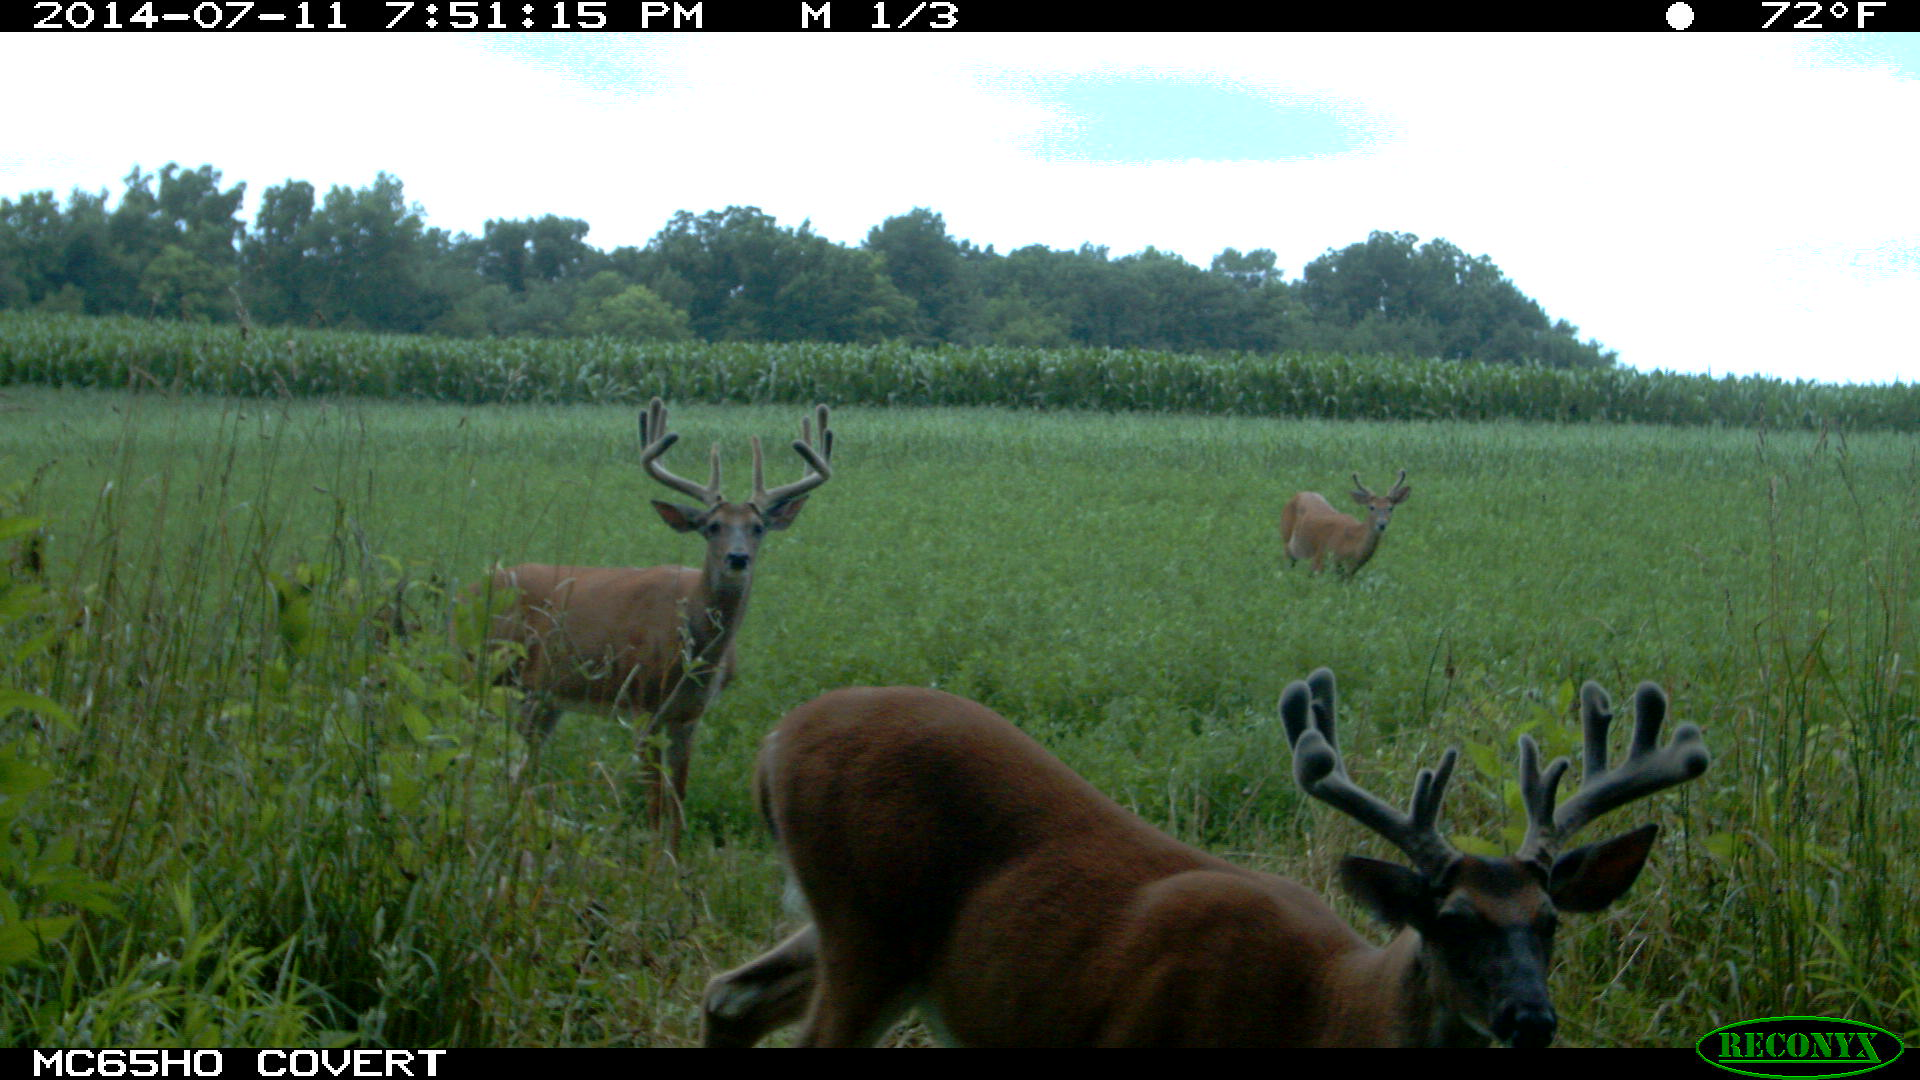 Crops, Deer Both Prime for Harvest